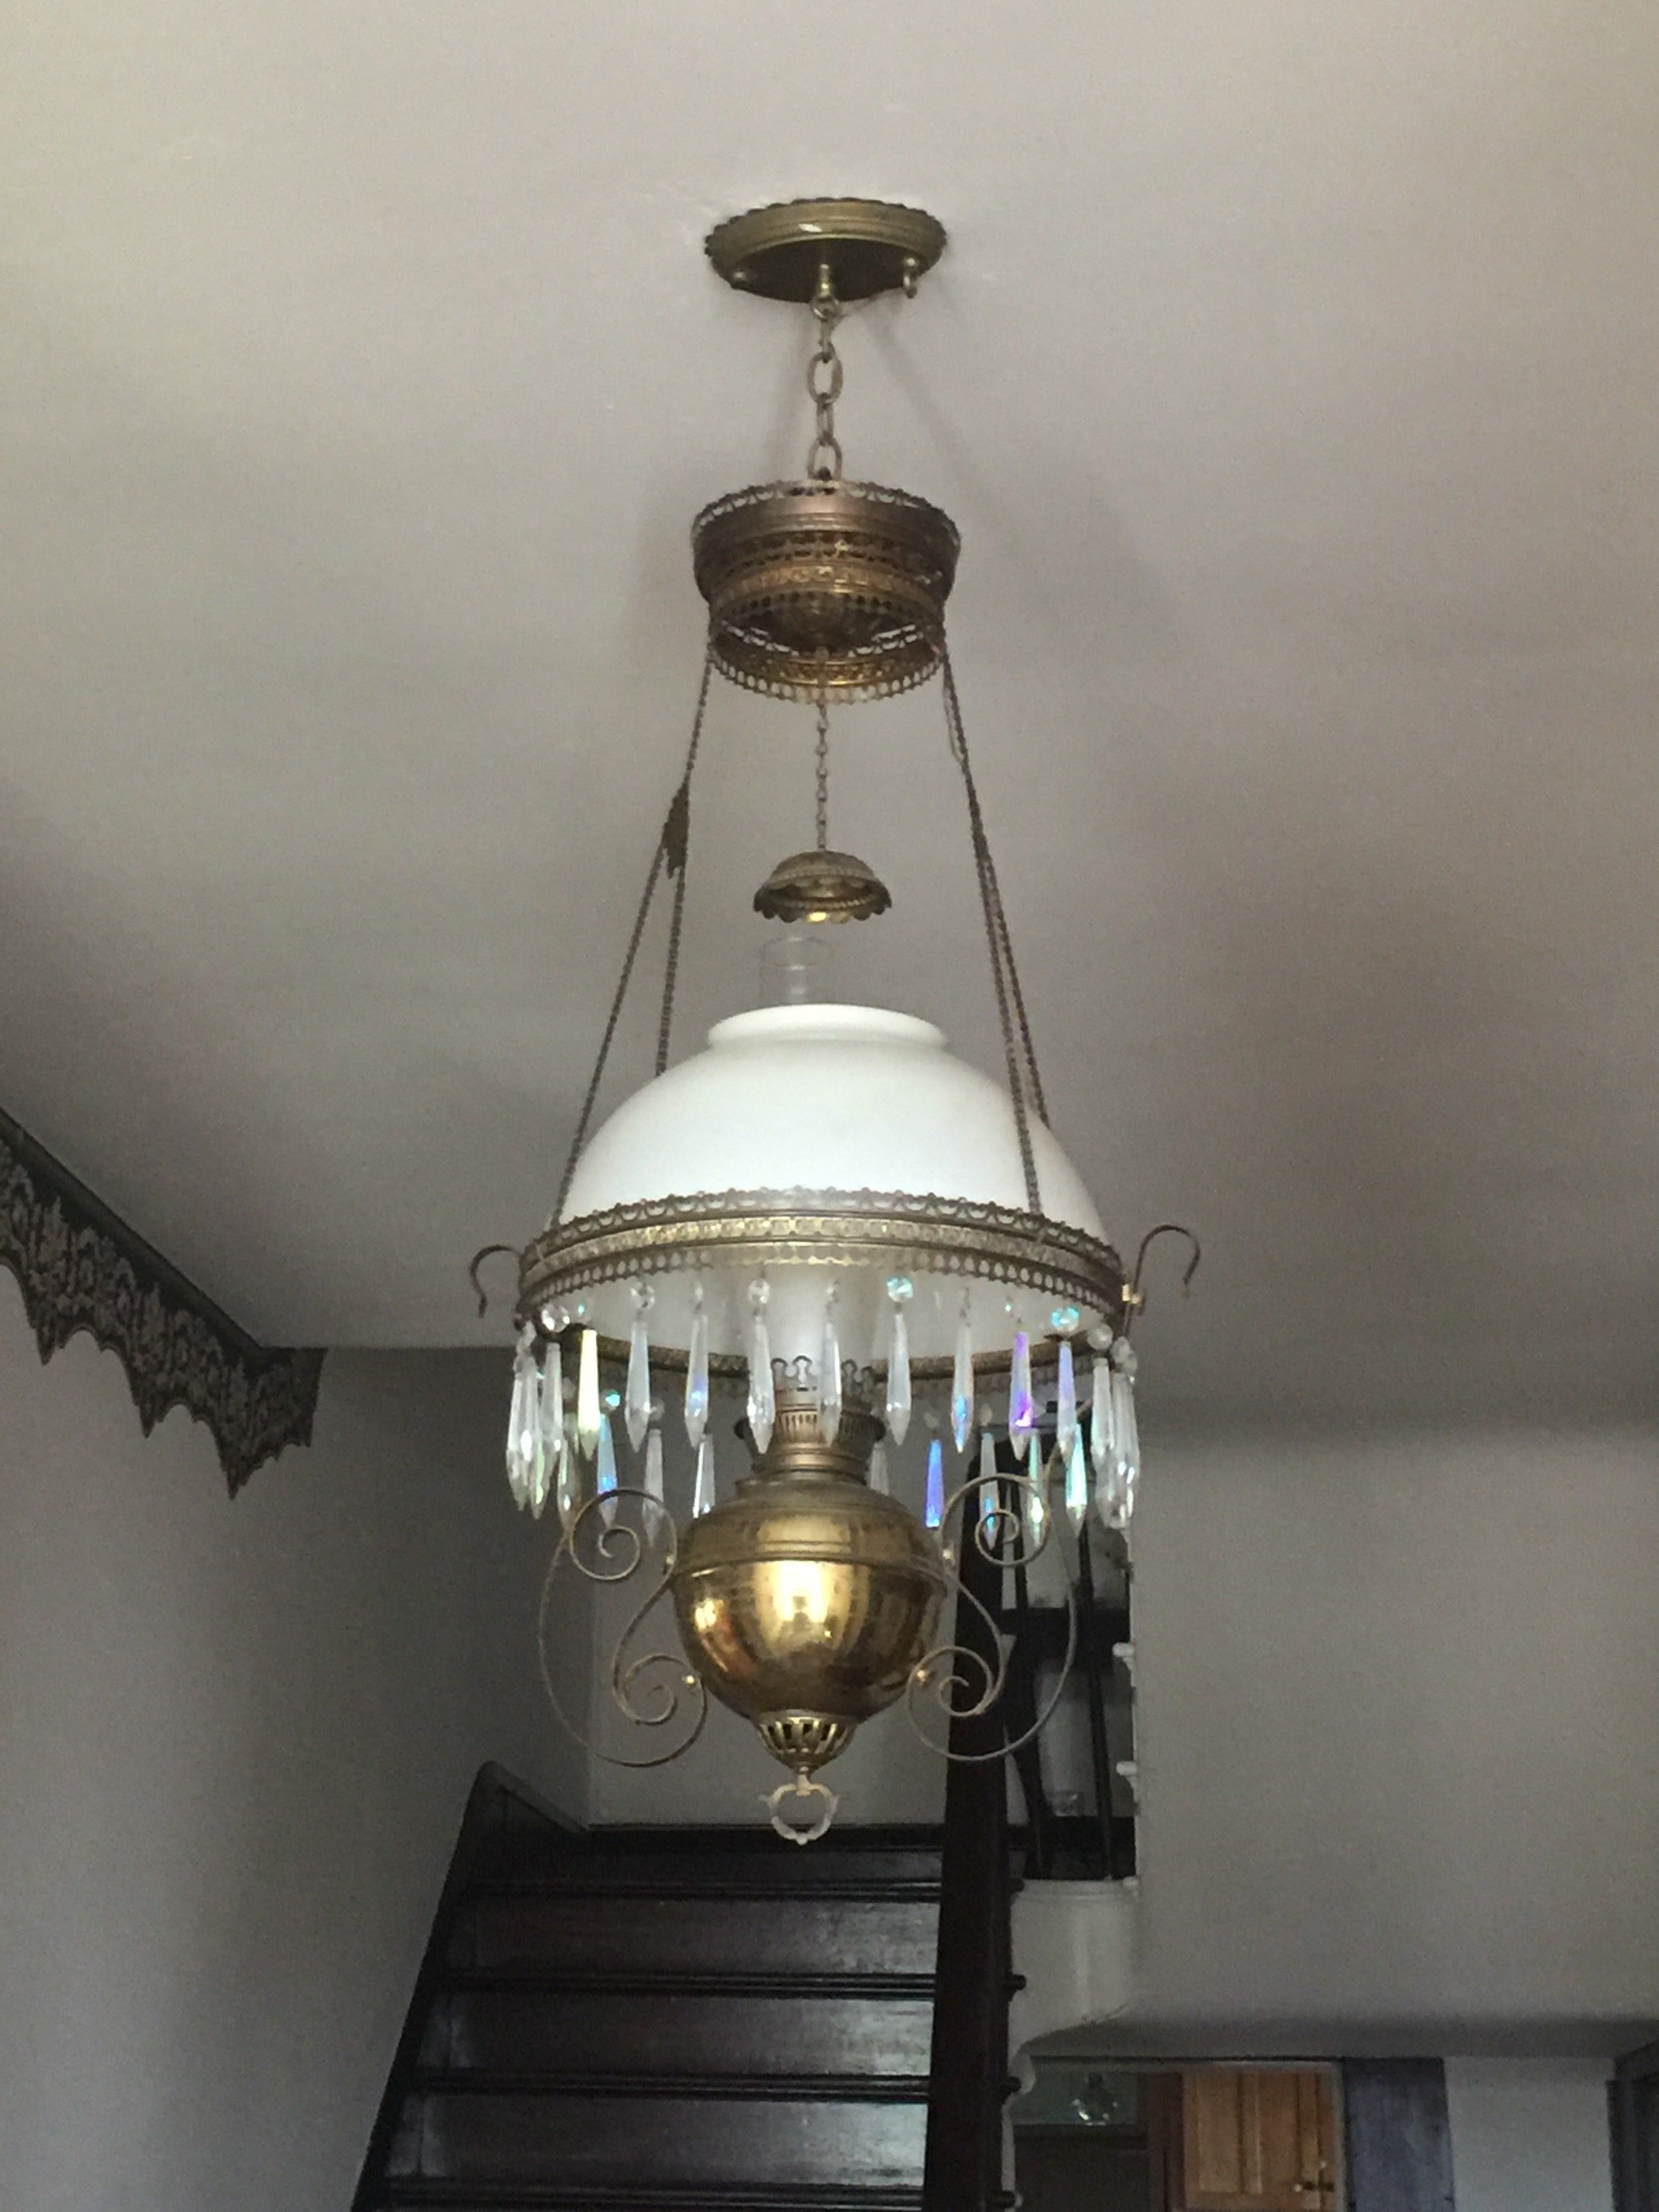 One of the original (converted) gaslights in the house.